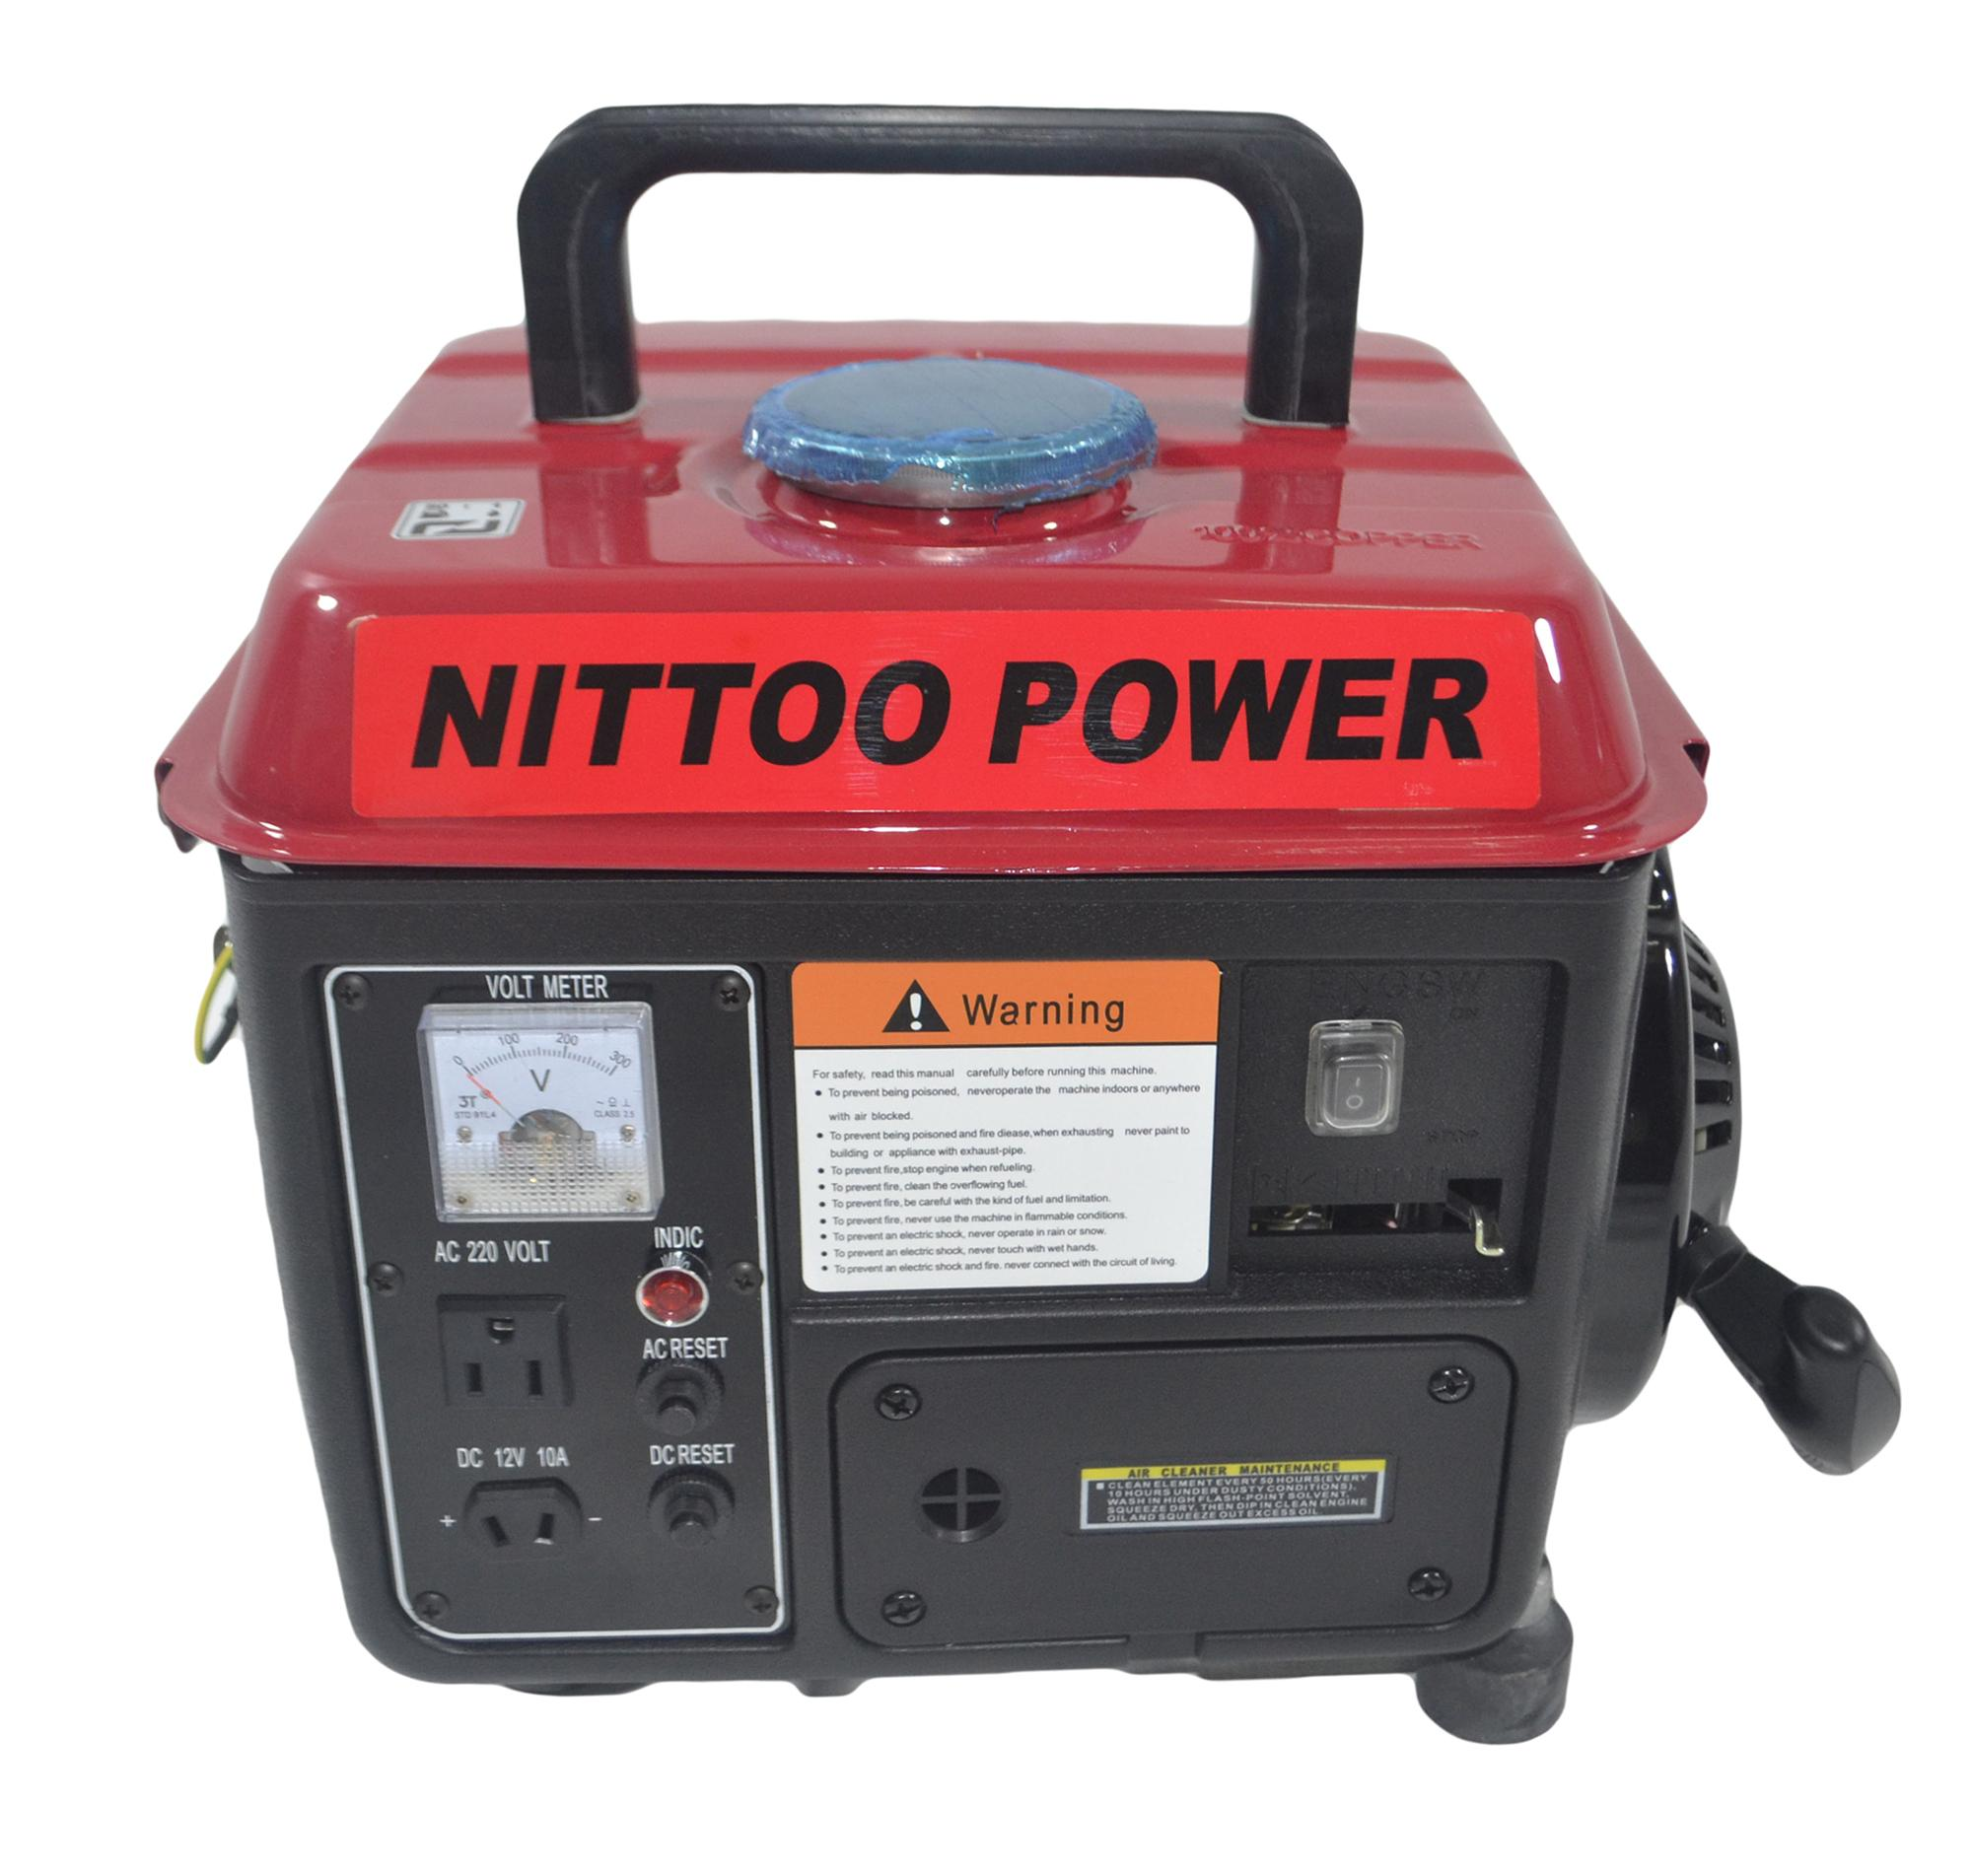 Portable Generator For Sale Power Prices Brands 4000 Watt Generac Wiring Nittoo 950w 100 Copper Wire Gasoline Recoil Start 220v Single Phase